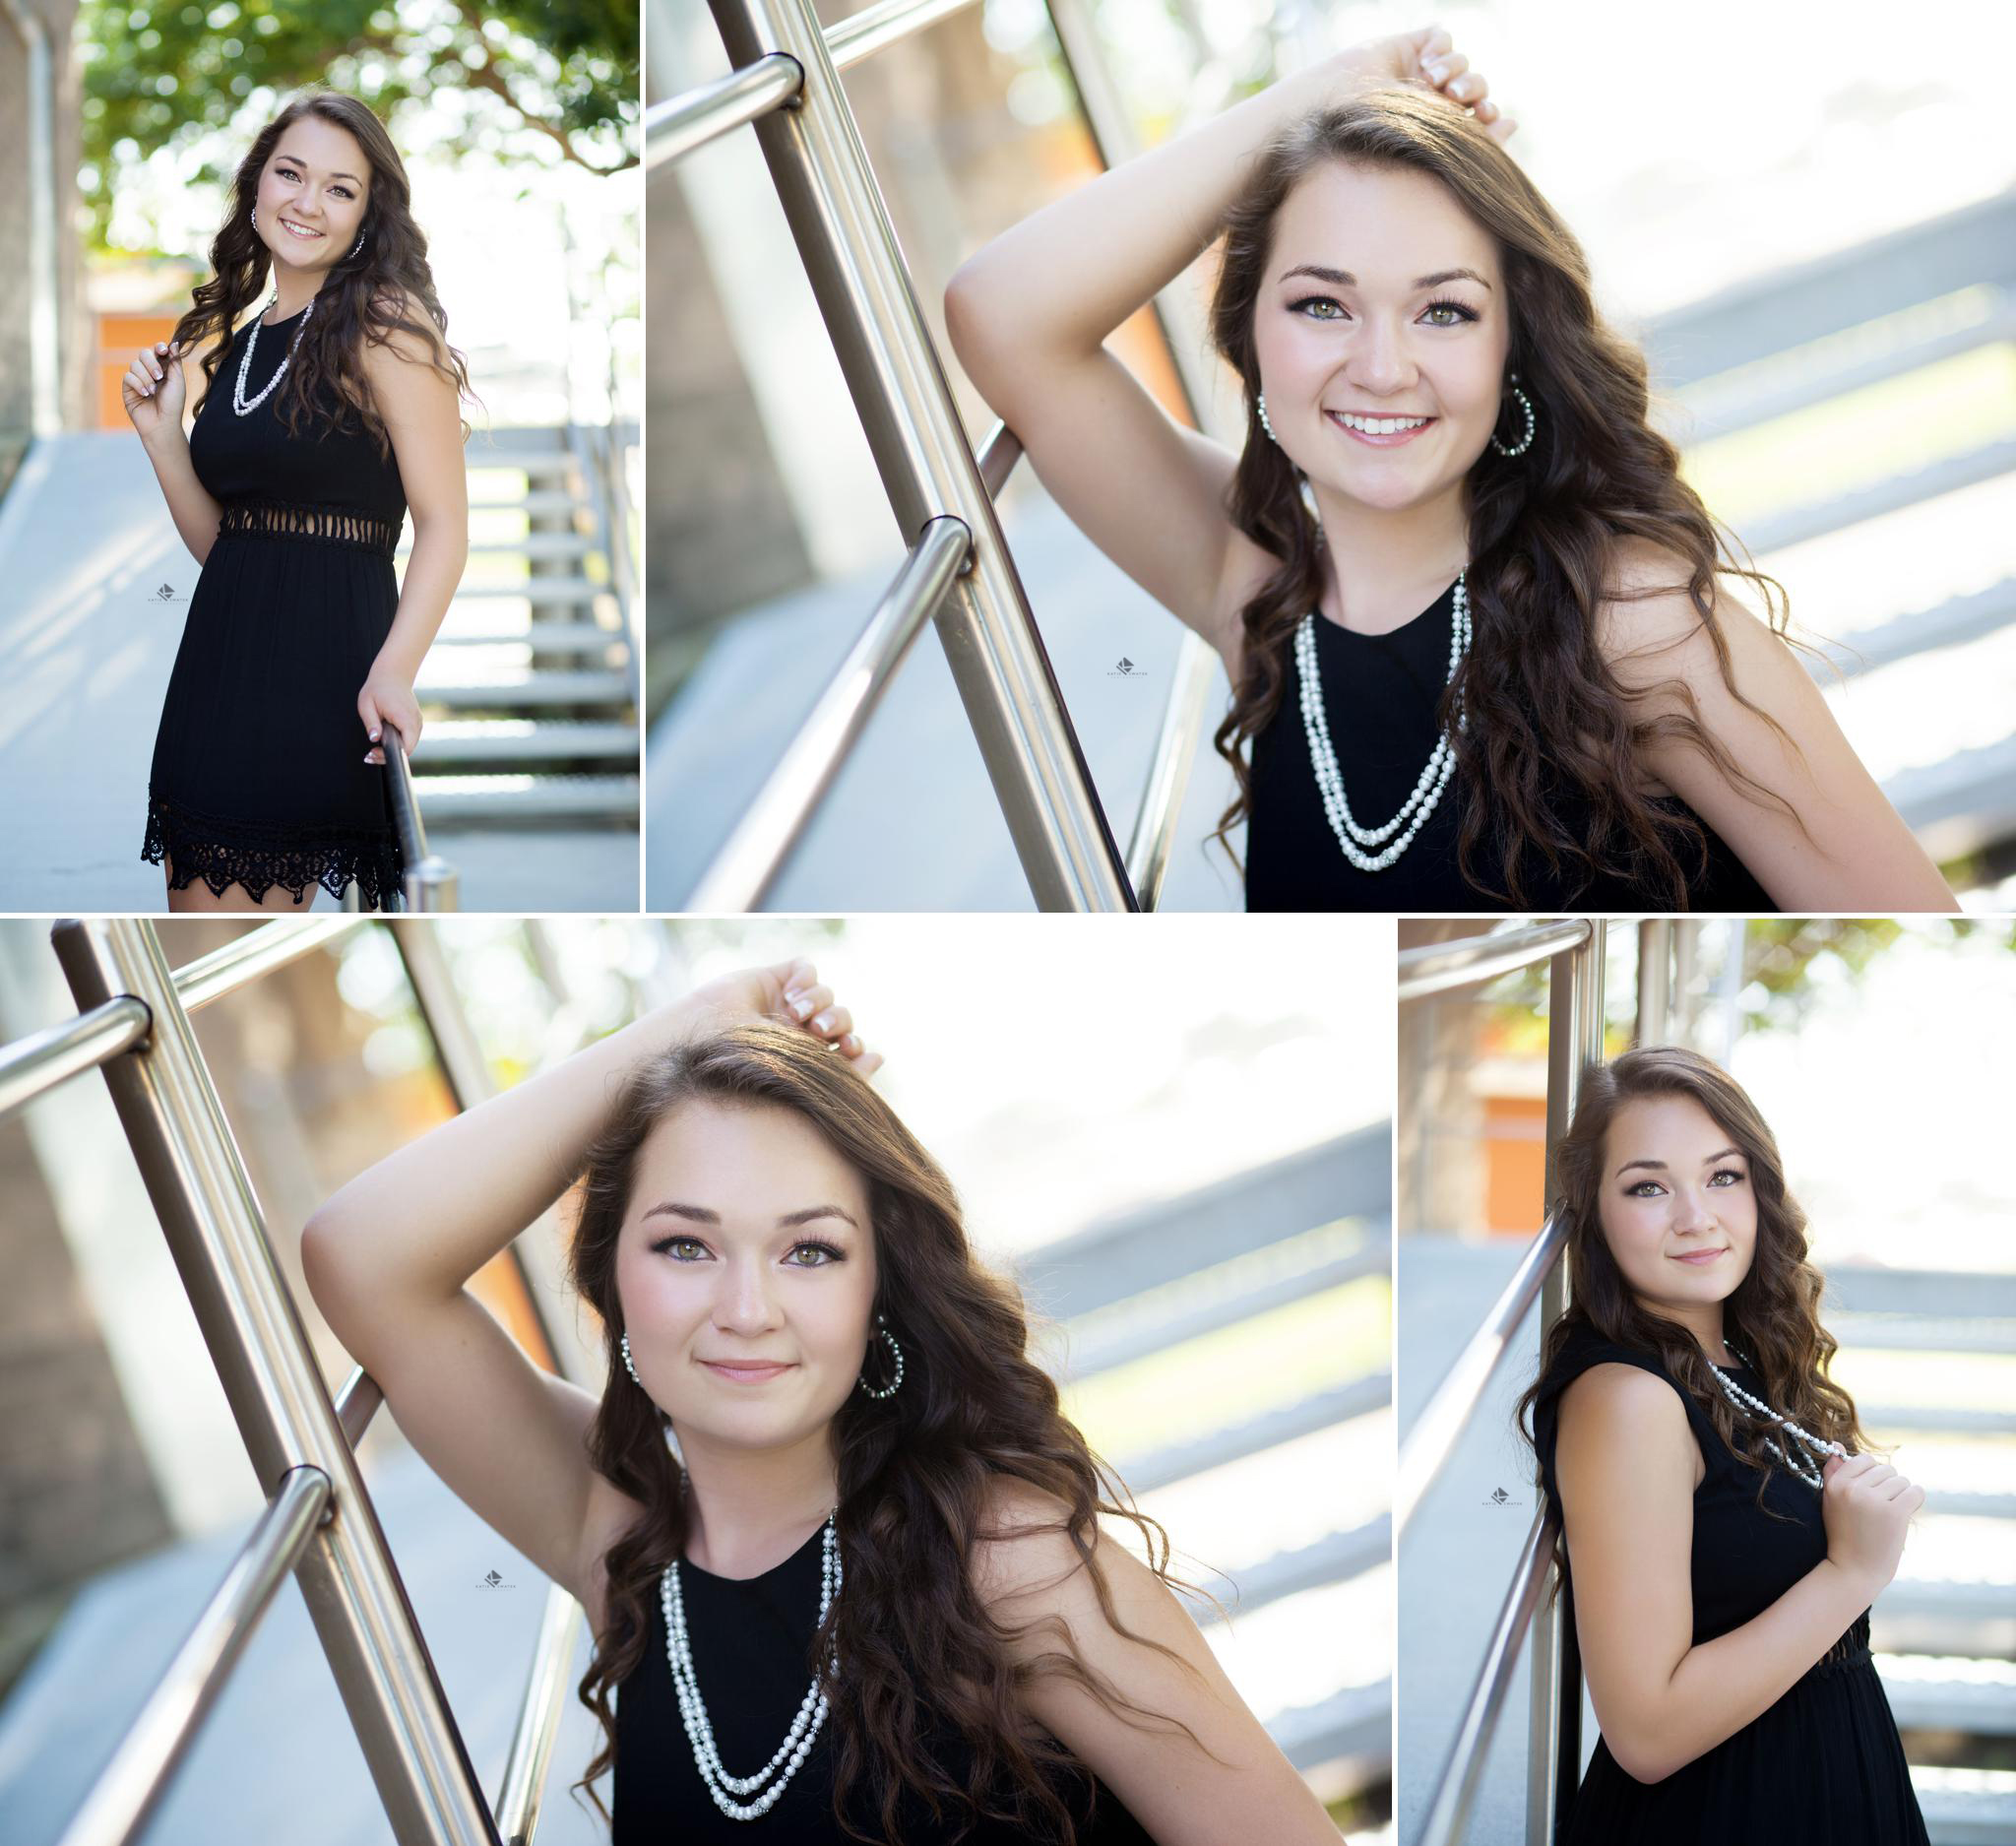 Black Dress Staircase Senior Images by Katie Swatek Photography